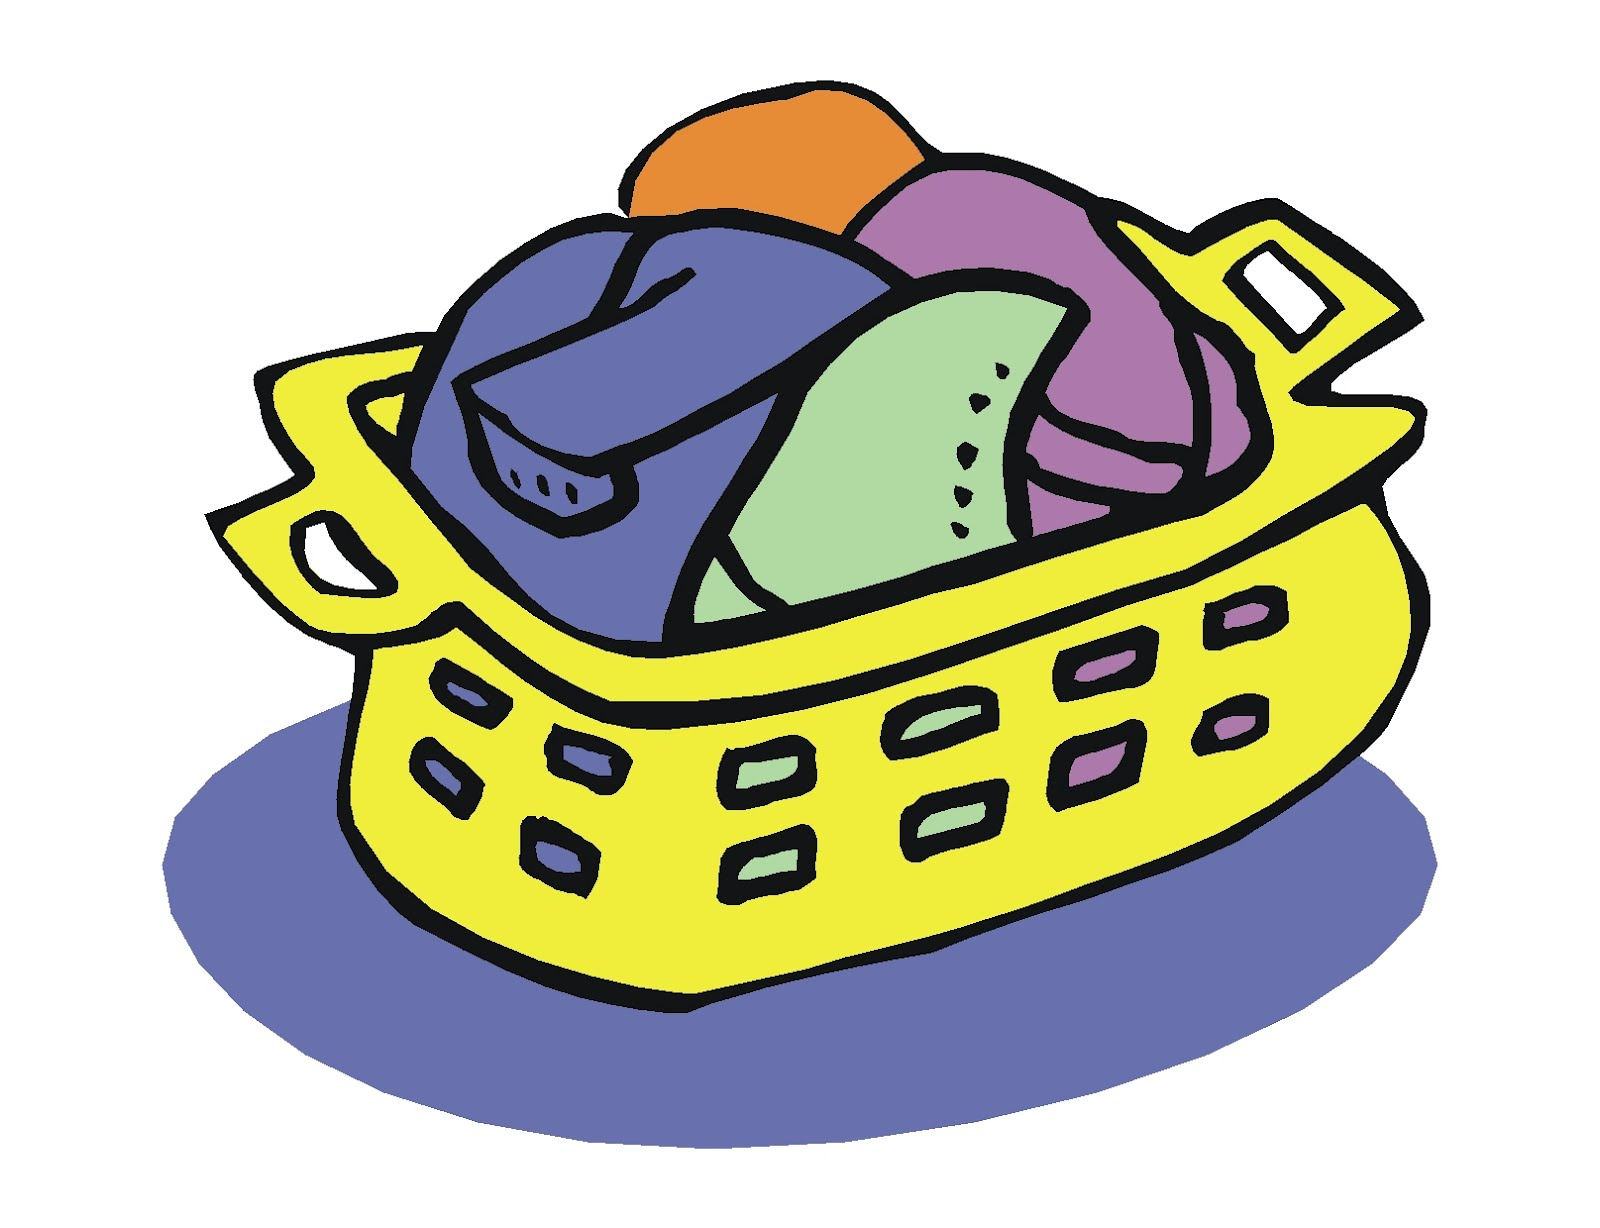 Basket clipart clothing. Put on clothes free